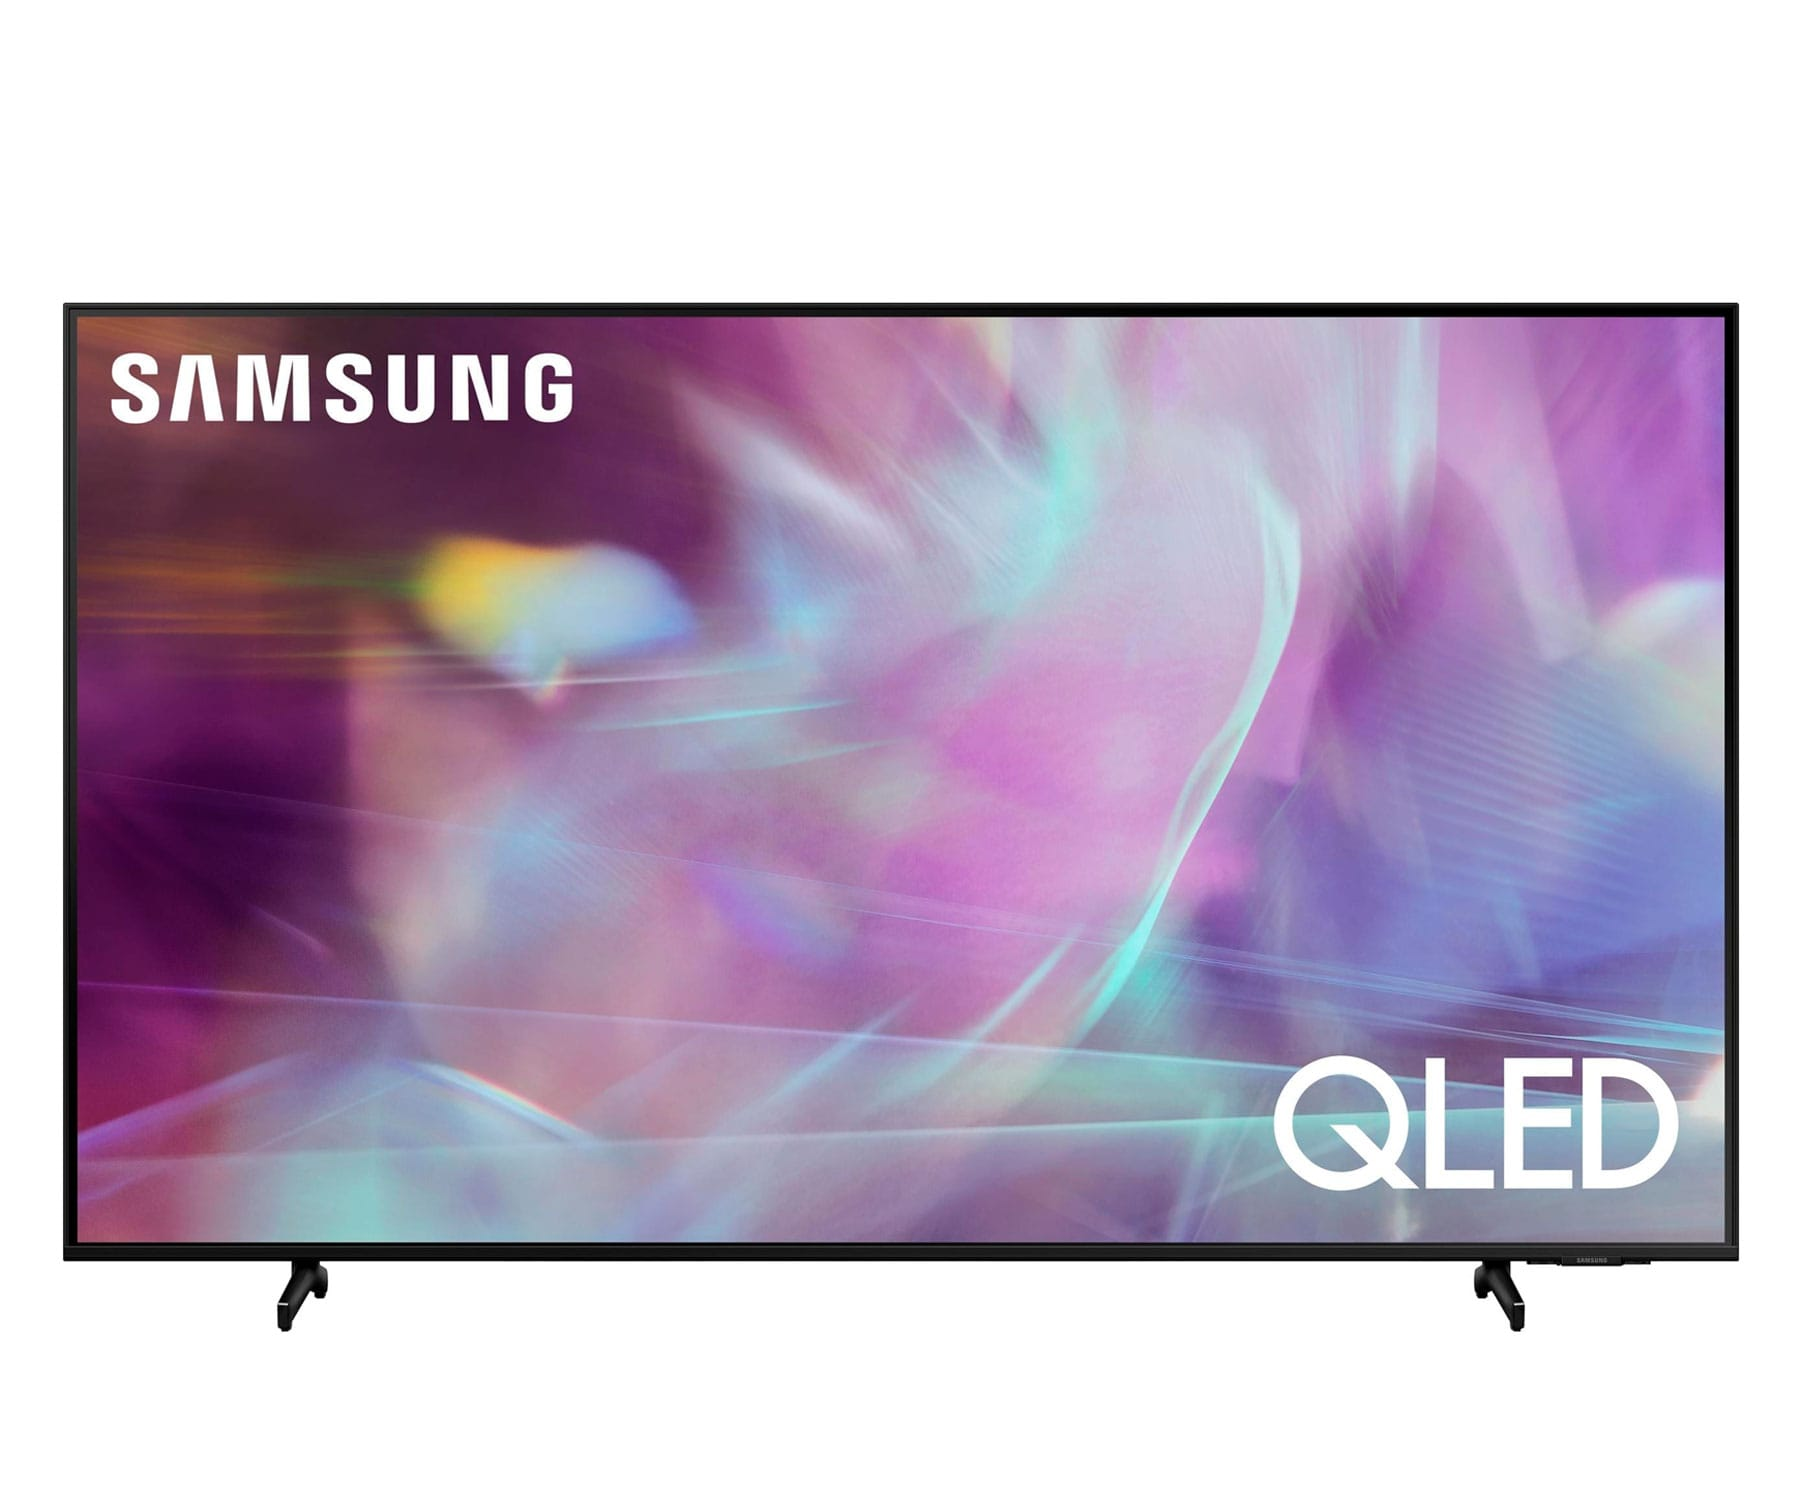 SAMSUNG QE75Q60AAUXXC NEGRO TELEVISOR 75'' QLED 4K SMART TV WIFI BLUETOOTH AMBIENT MODE